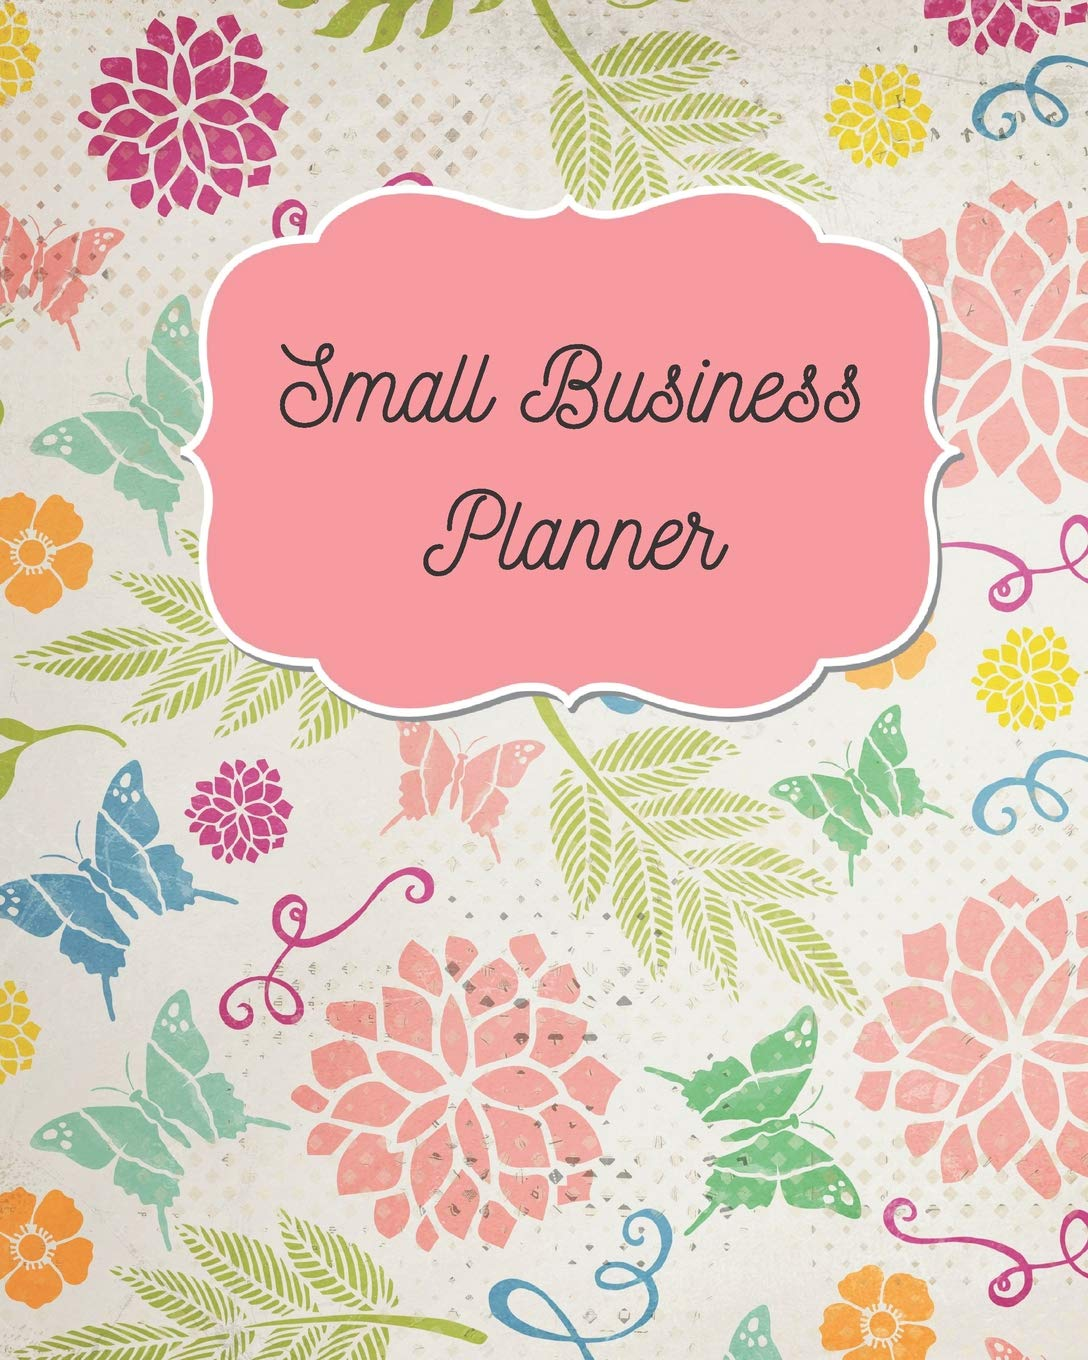 women. Small Business Planner: Monthly Planner and organizer with sales moms budget Best planner for entrepreneurs goals and more expenses